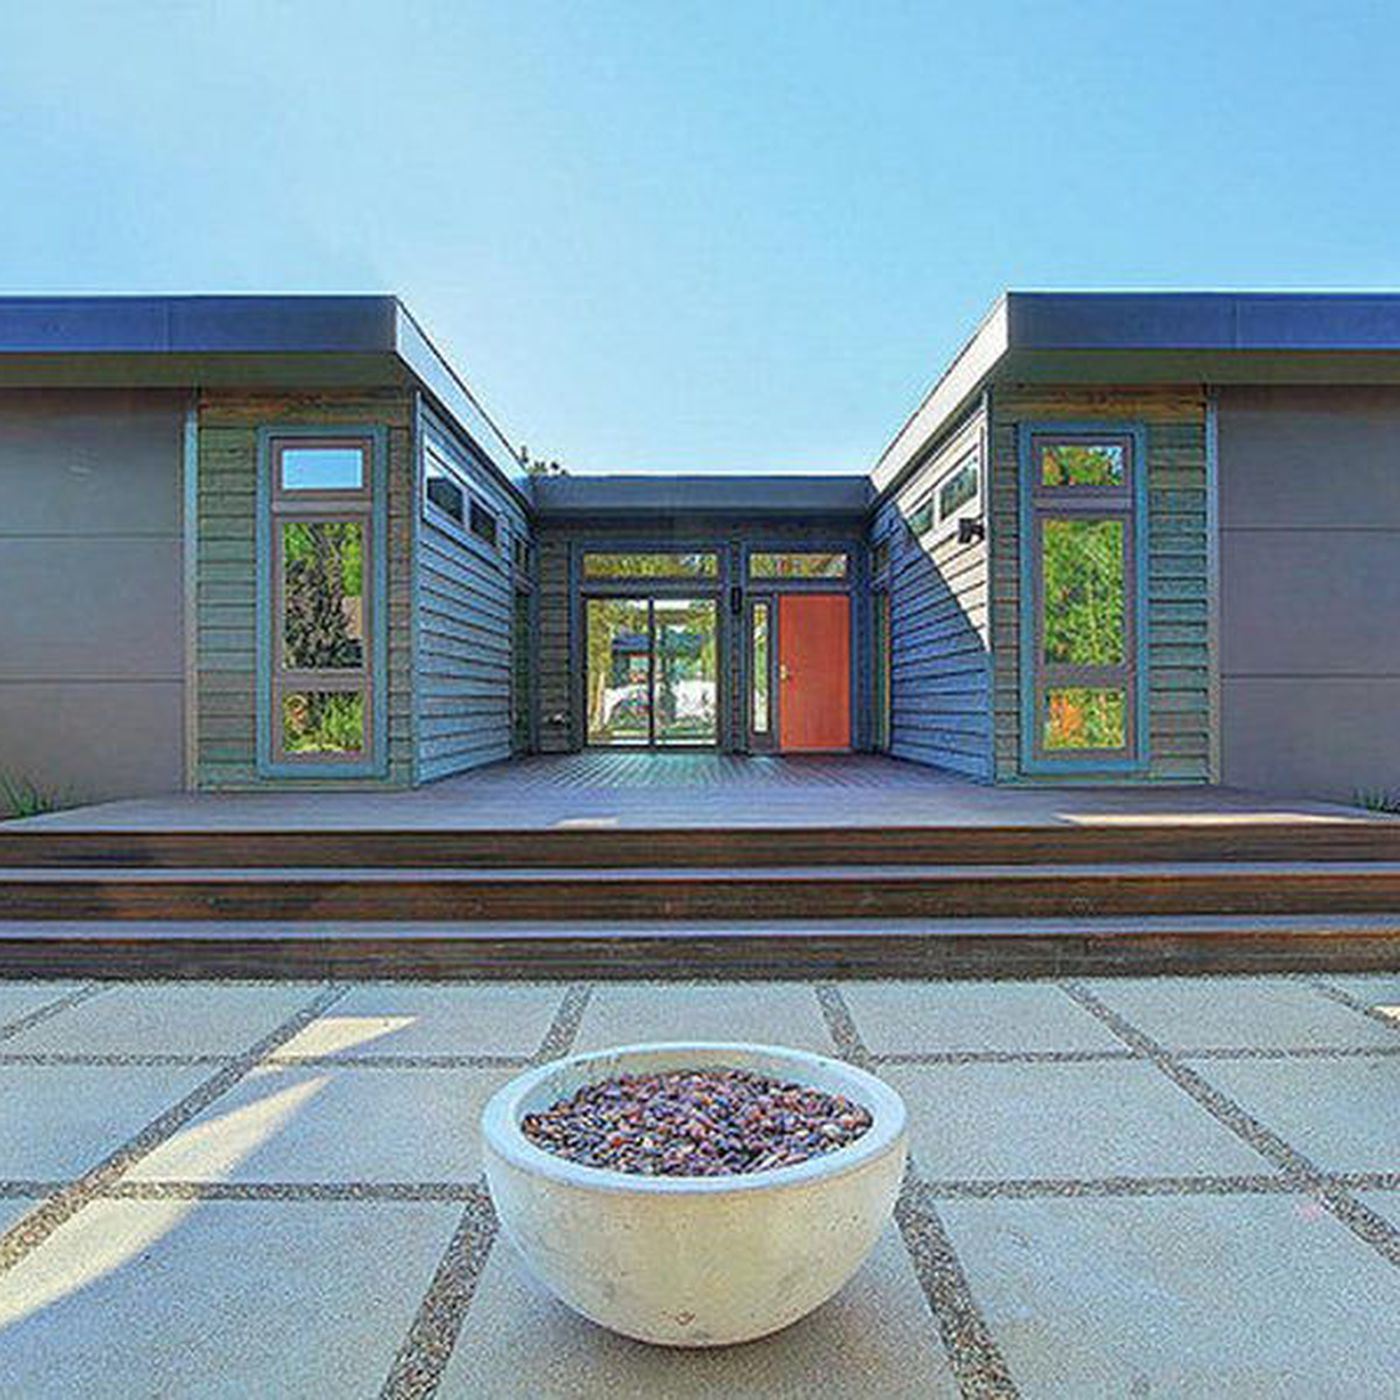 Superb 5 Affordable Modern Prefab Houses You Can Buy Right Now Curbed Interior Design Ideas Philsoteloinfo